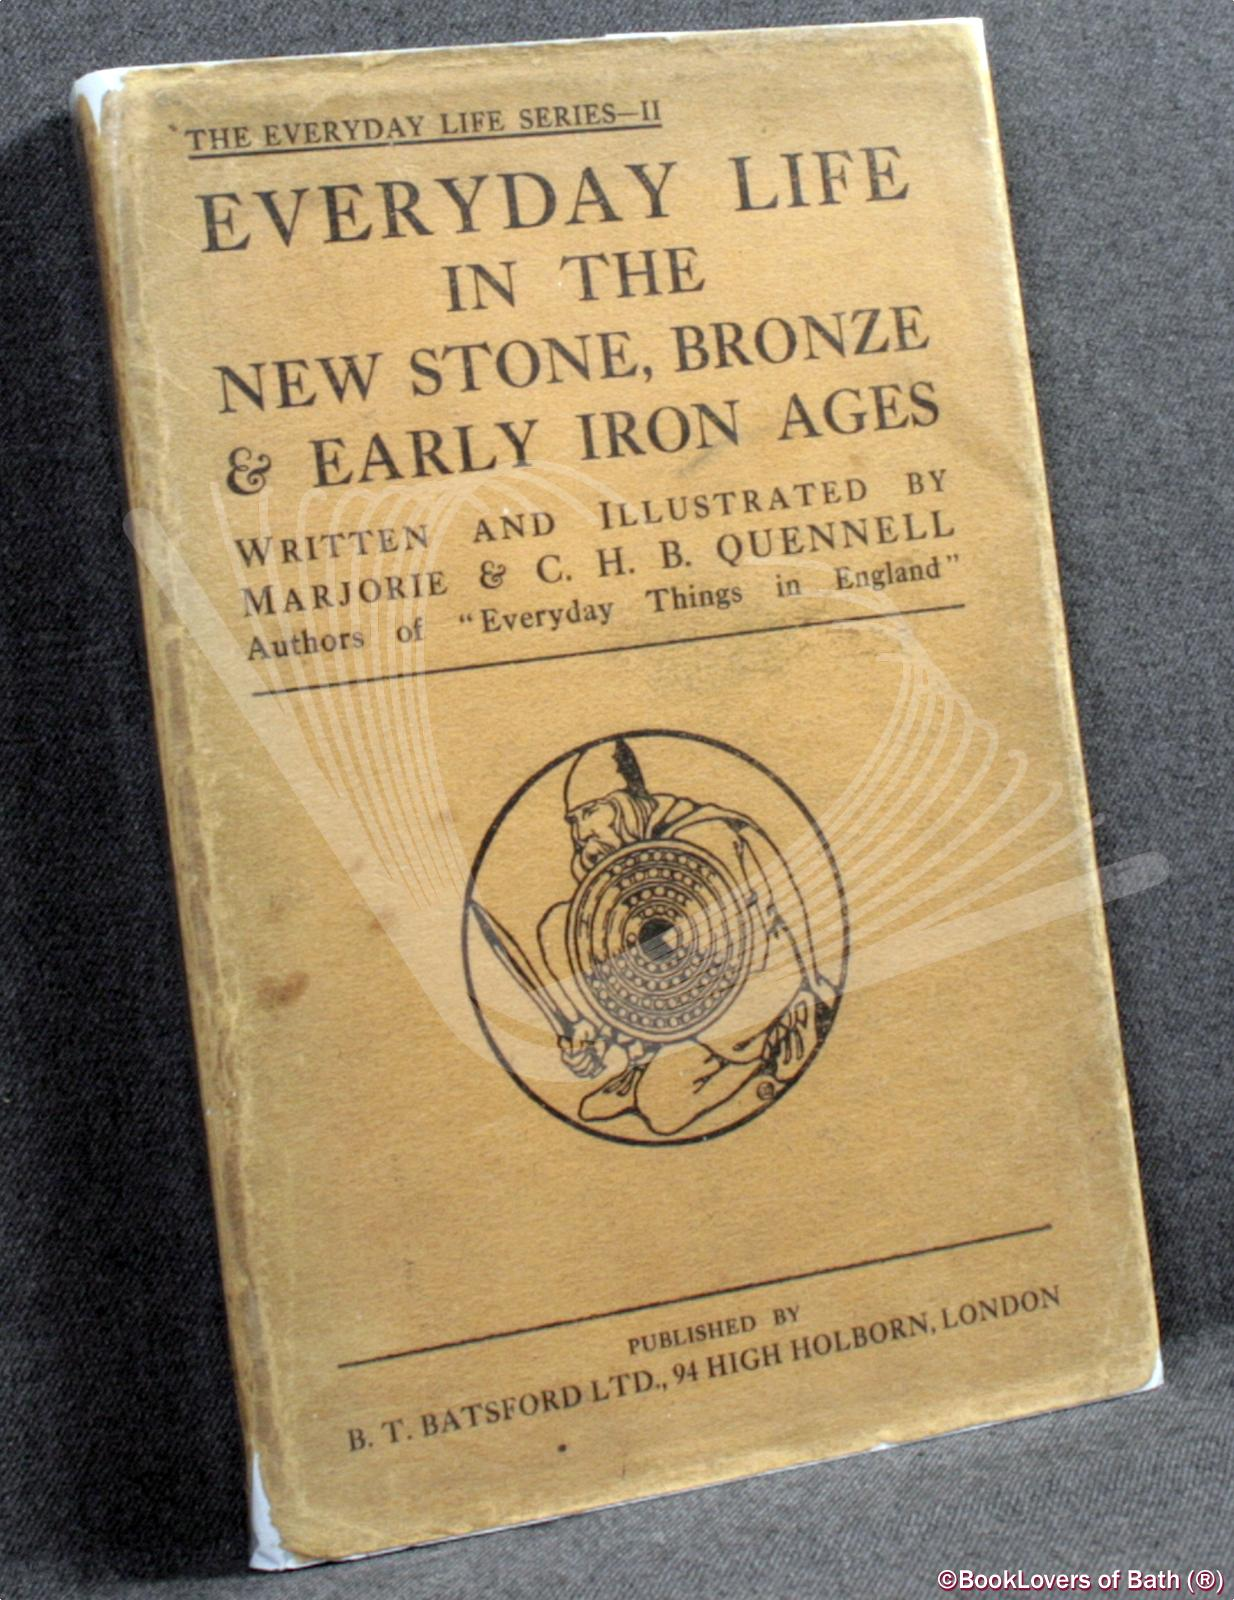 Everyday Life in the New Stone, Bronze & Early Iron Ages - Marjorie & C. H. B. [Charles Henry Bourne] Quennell